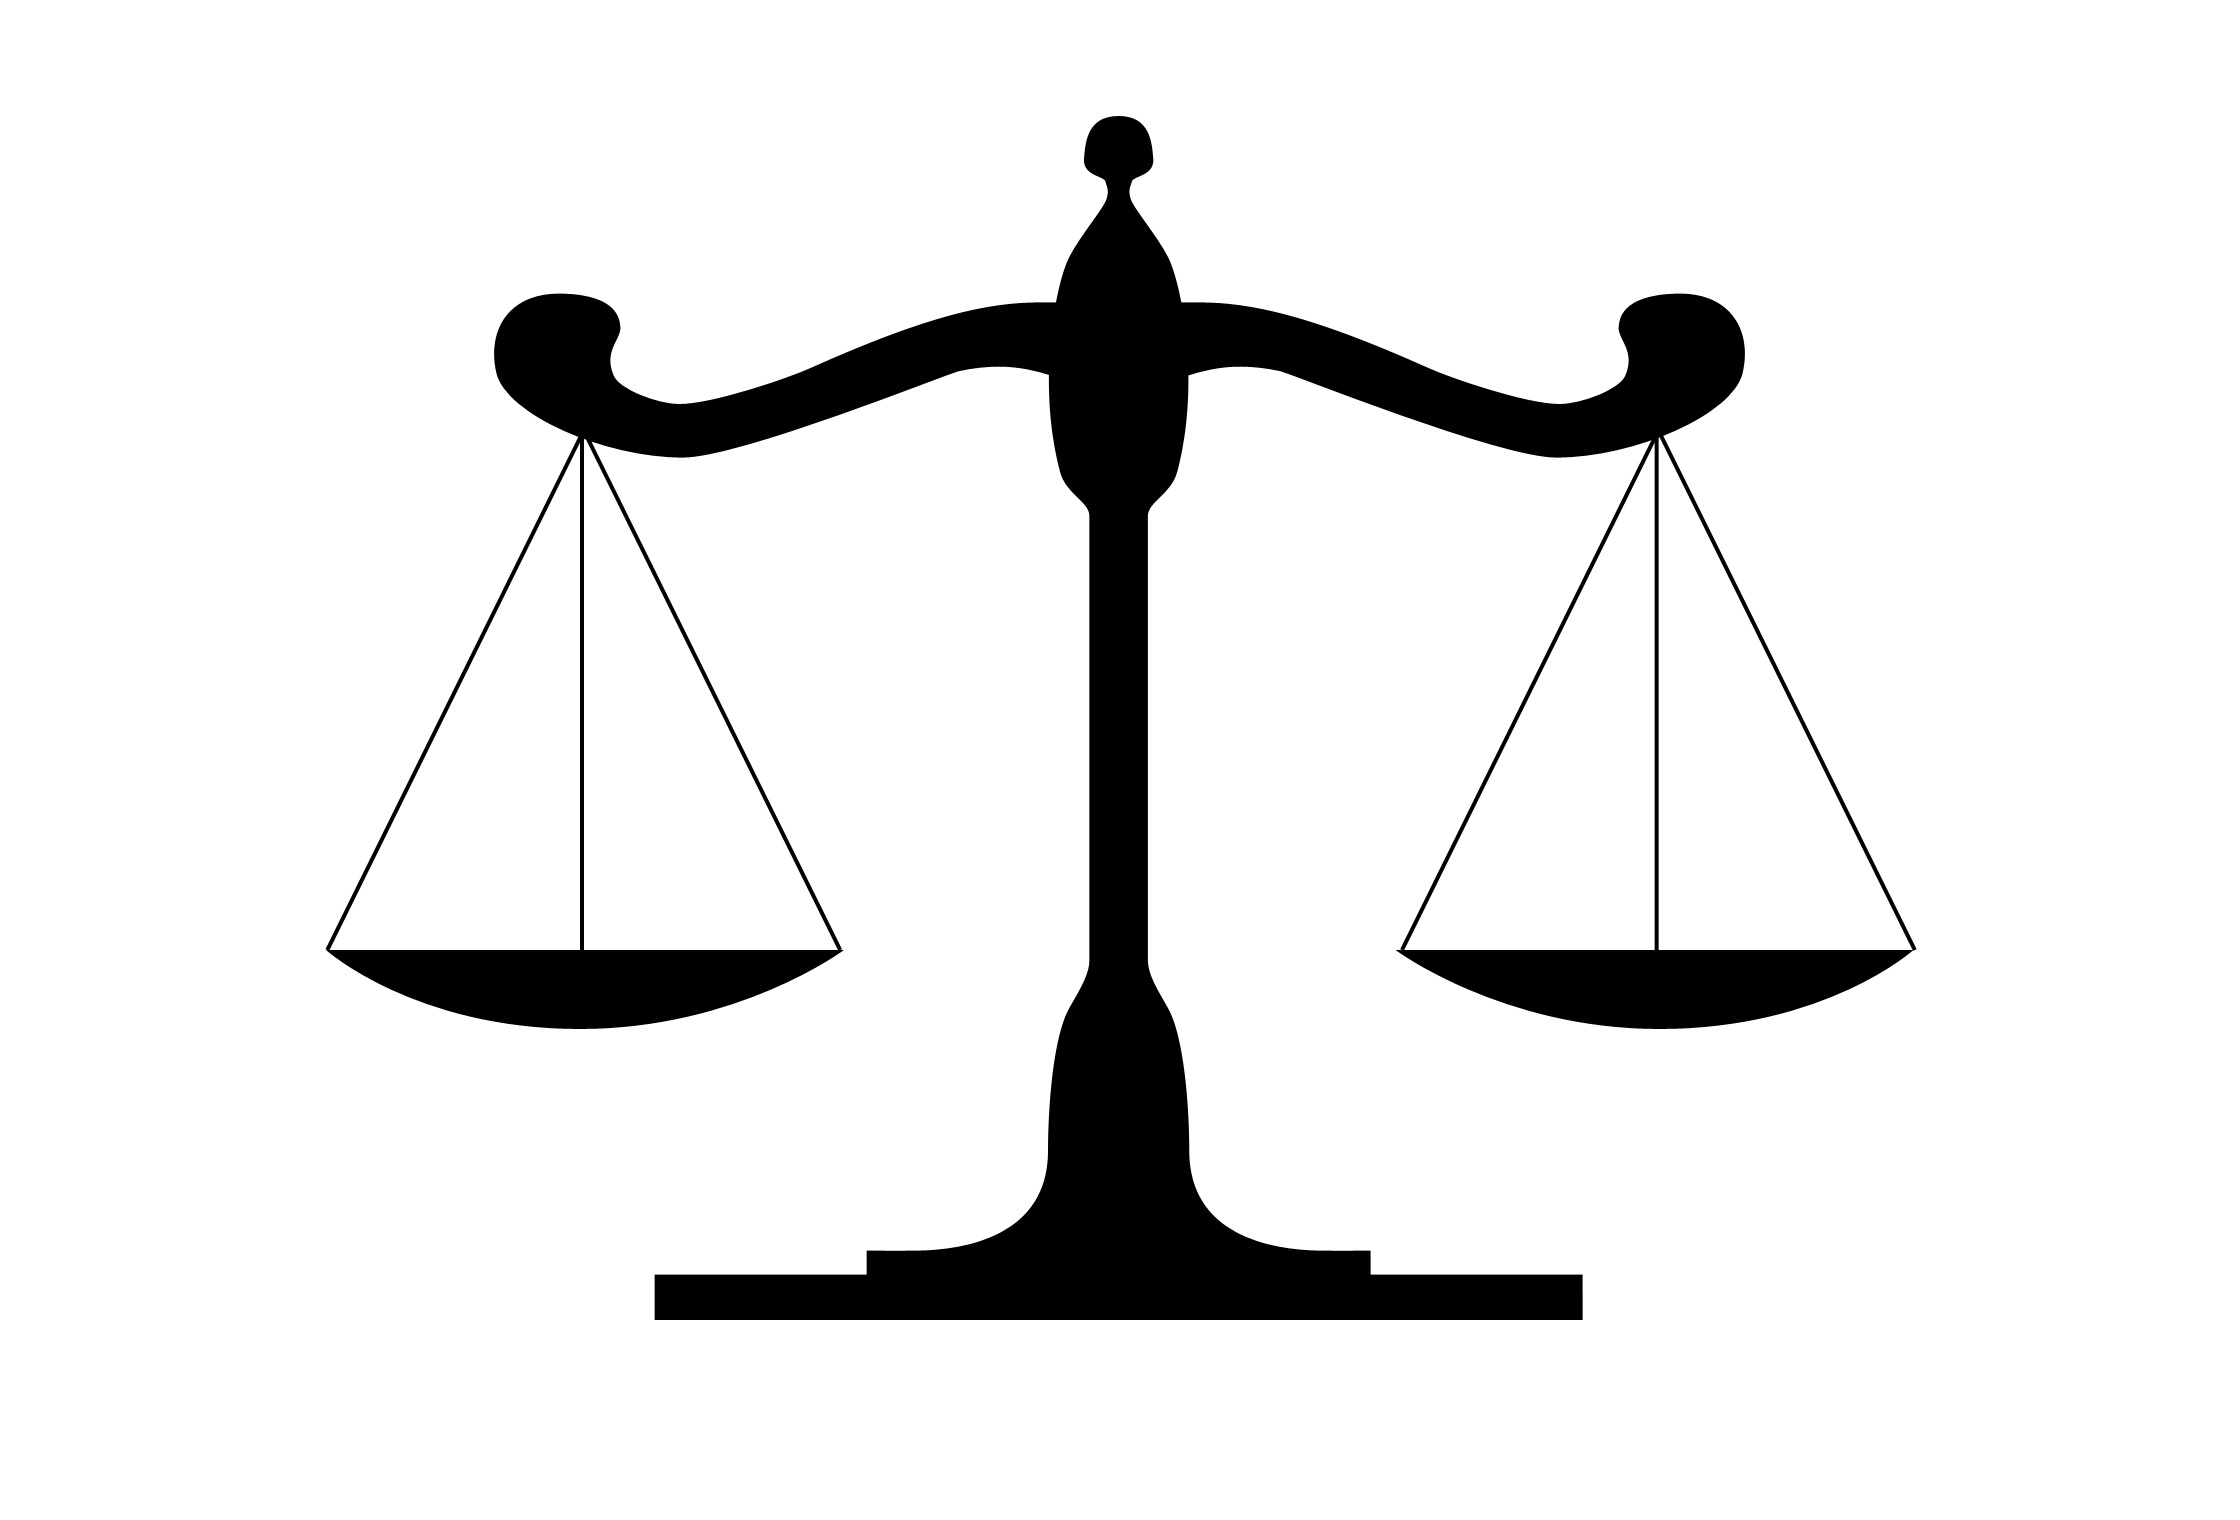 Justice clipart balance power. Free download clip art